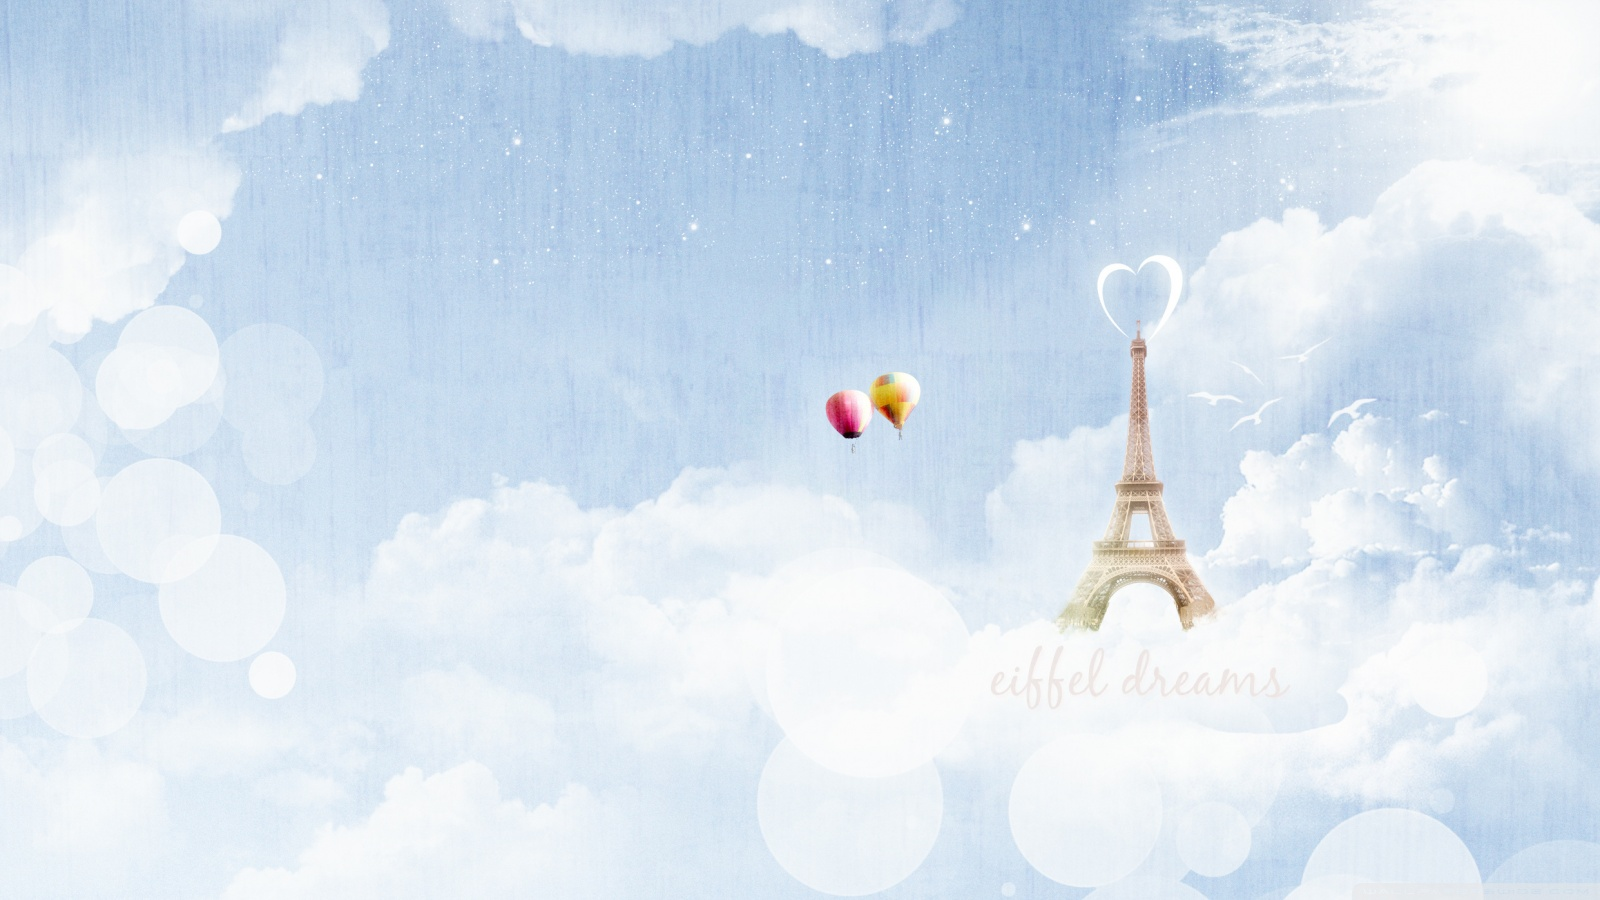 Eiffel dream 49441